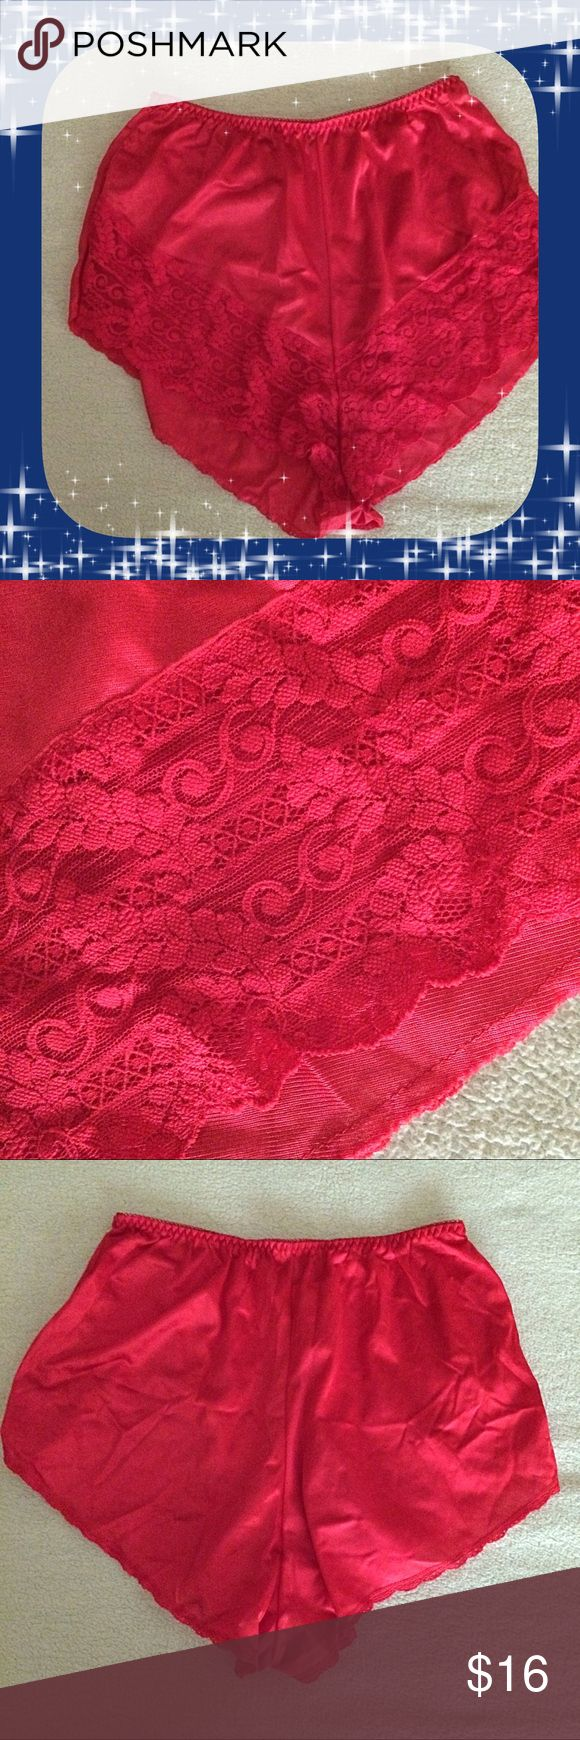 "Ashley Taylor / NWOT Red Panty / Large / Vintage Ashley Taylor / NWOT Red Panty / Large / Vintage / 100% Nylon / 4"" Side Slits.  Please feel free to make an offer - Enjoy BIG discounts on bundles & save $$$ on shipping! I package safely & ship fast.  TY & Happy Poshing! 💜💜💜 C4 Vintage Intimates & Sleepwear Panties"